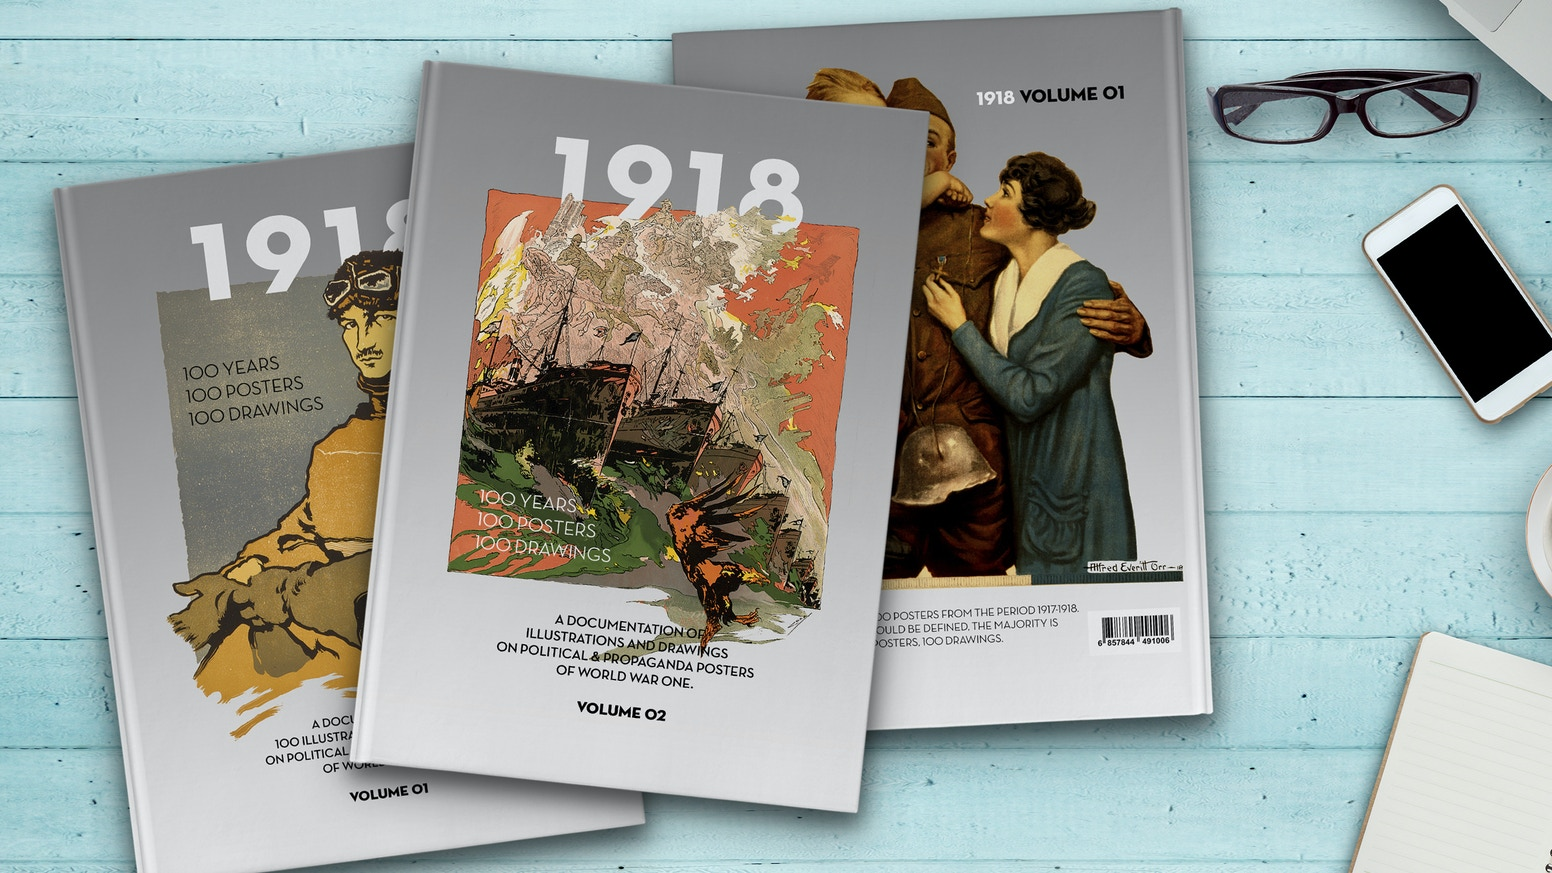 1918 . The Poster Book of WW1. VOLUME 02! A historical Documentation of illustrated Political & Propaganda Posters. Retouched, restored